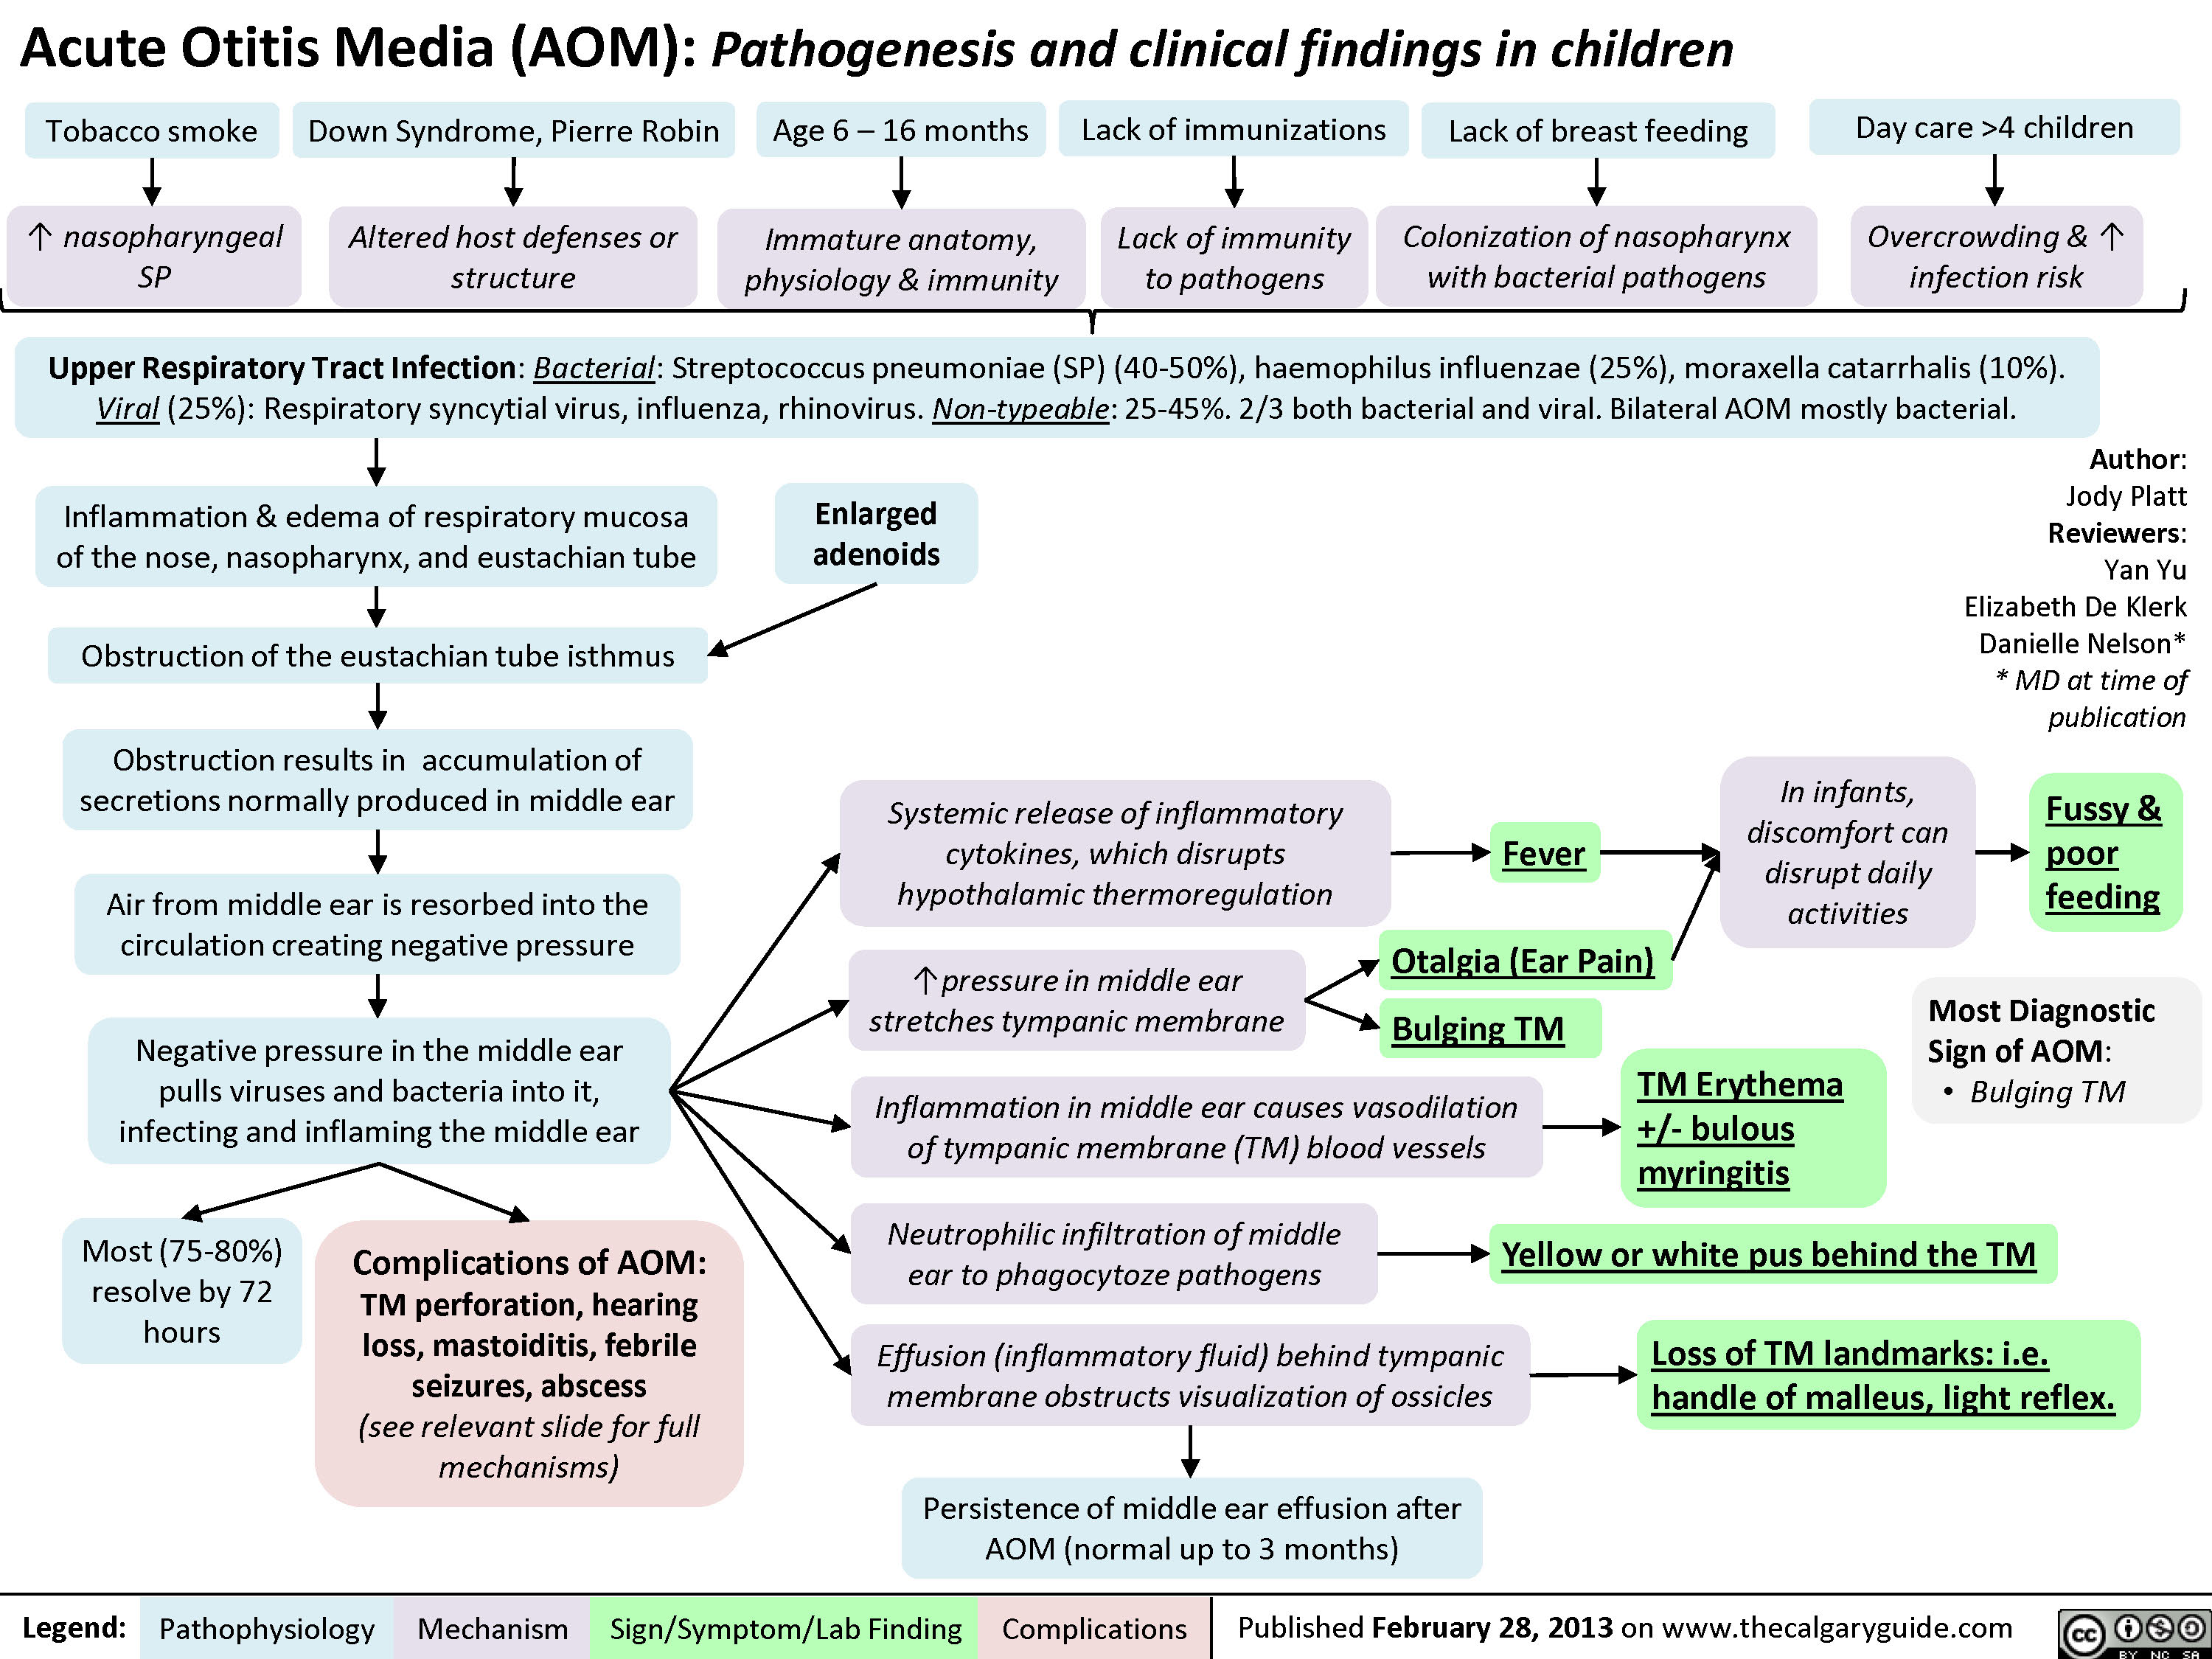 Acute Otitis Media - Pathogenesis and Clinical Findings (in Children)